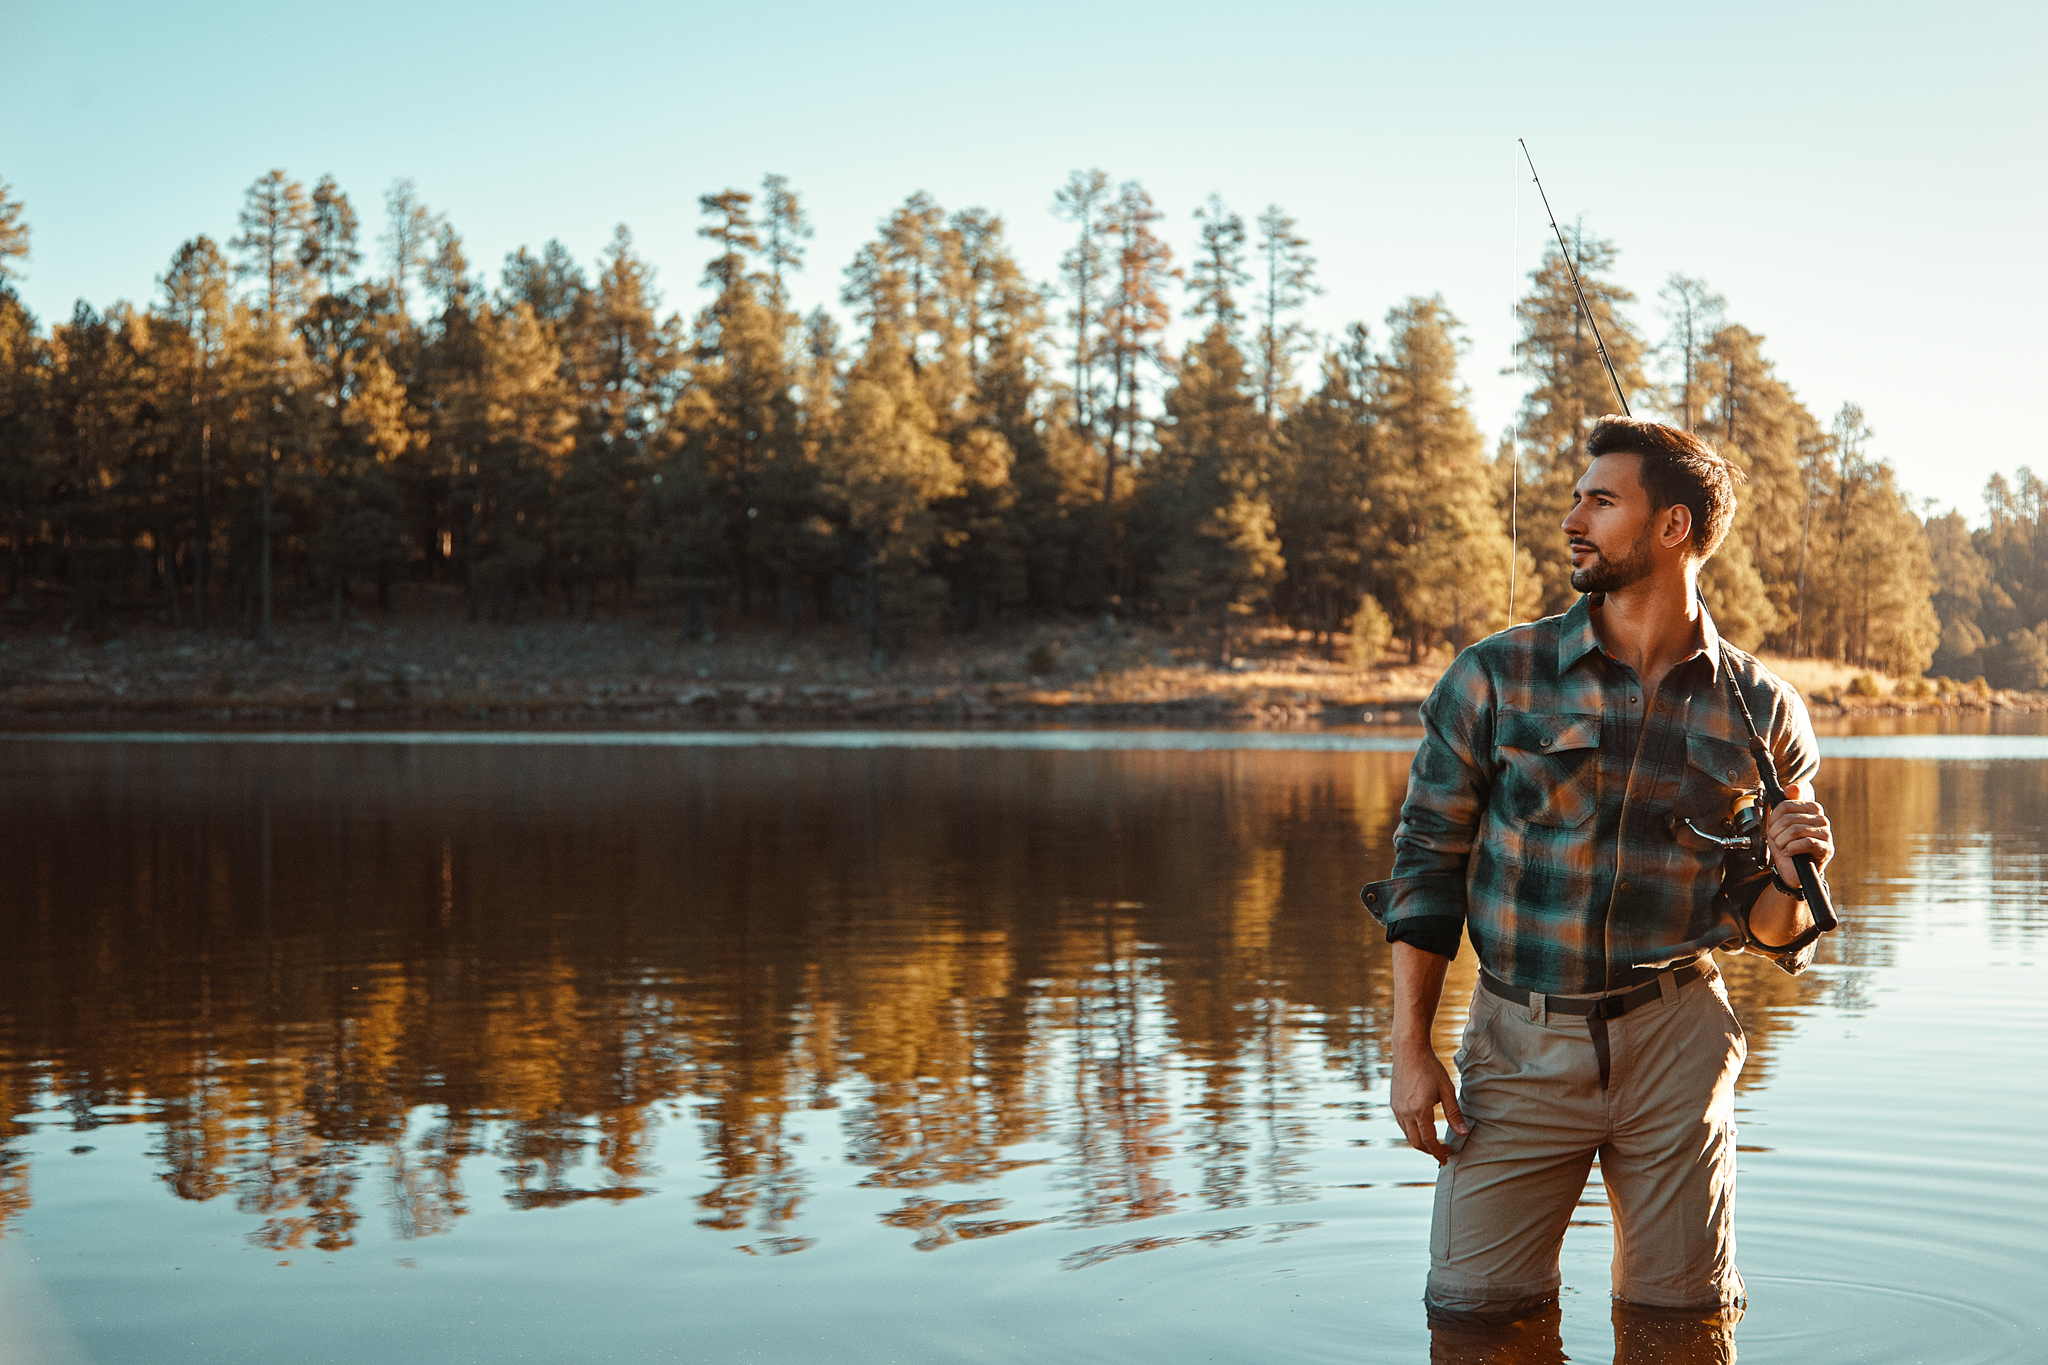 Phoenix Commercial Portrait Photographer - Fisherman Outdoor Lifestyle Photos